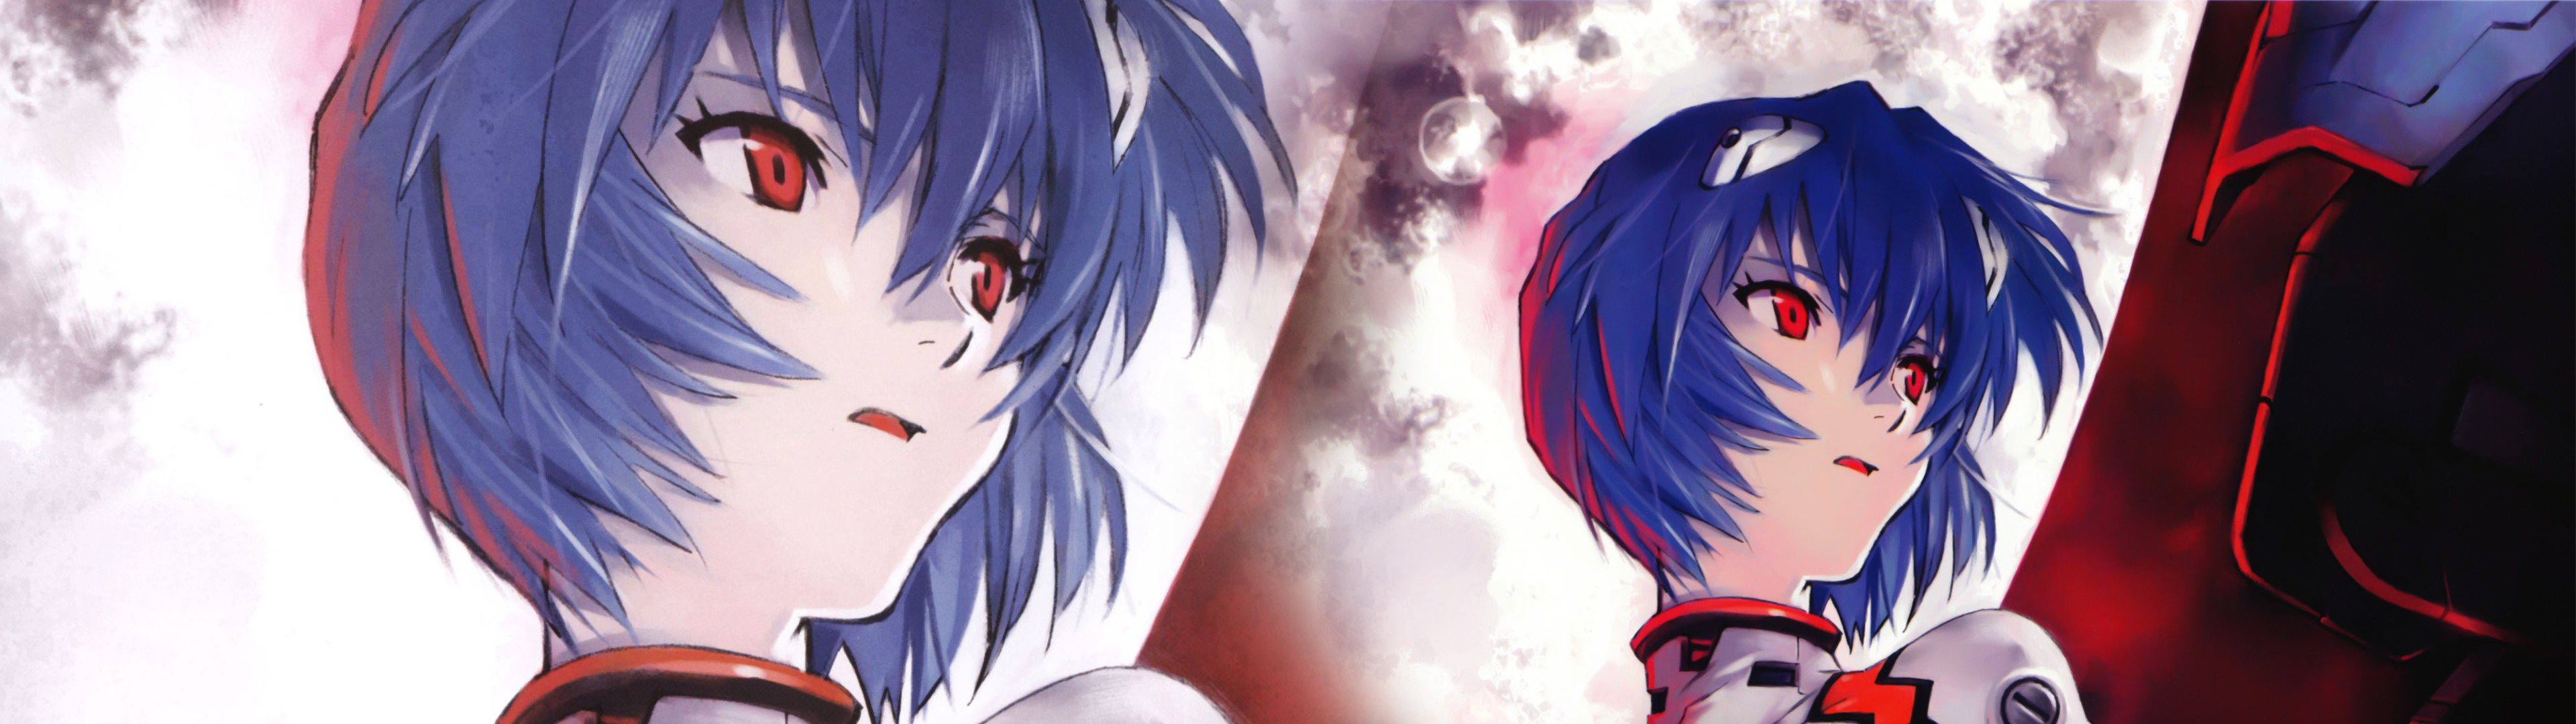 3840x1080 Ayanami Rei, Neon Genesis Evangelion, Moon, Face, Anime Girls, Sitting,